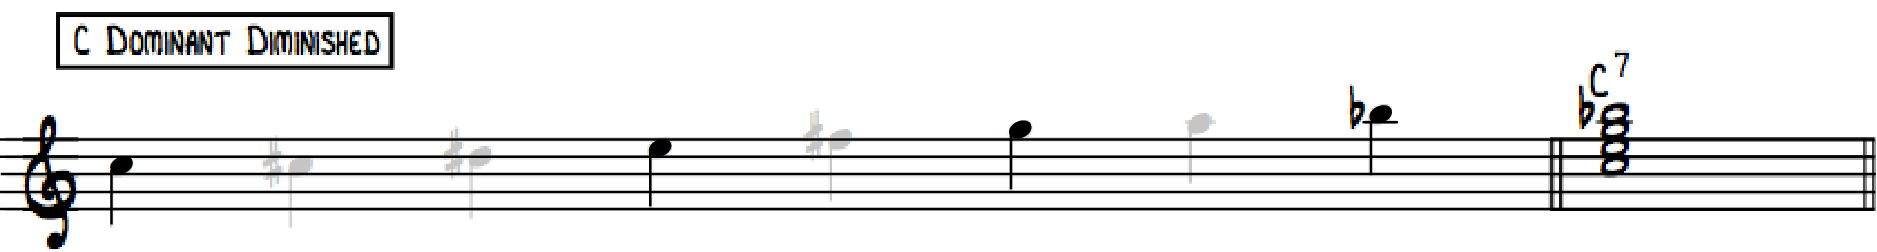 Dominant Diminished Scale Dominant Chord Outline